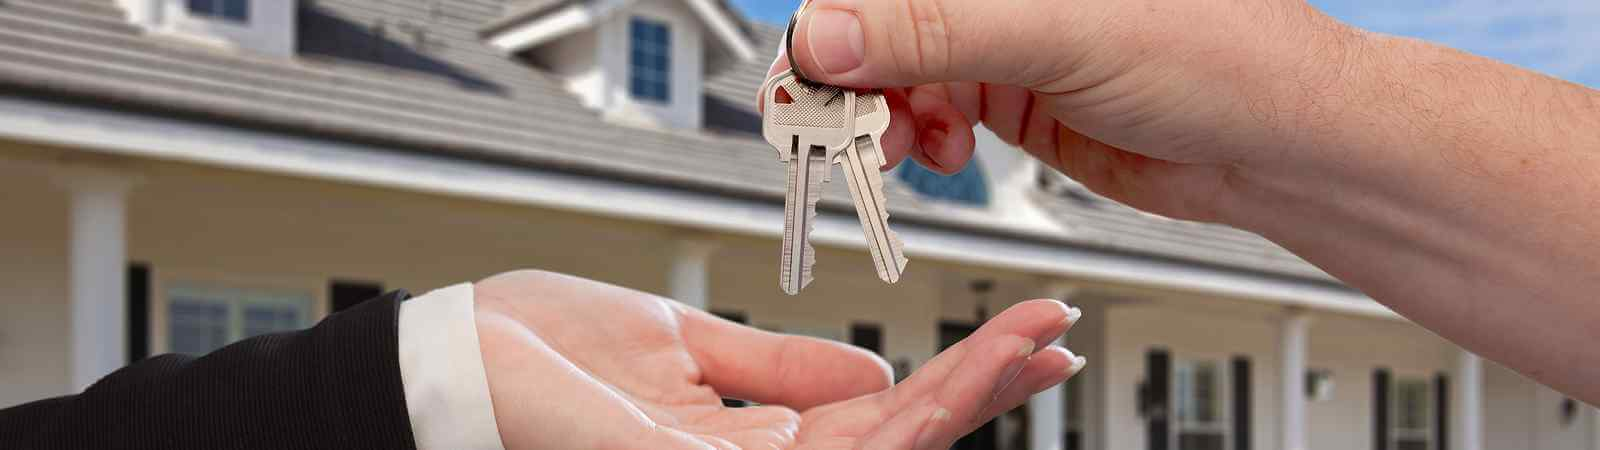 Dublin Ohio Rental Real Estate Property Management